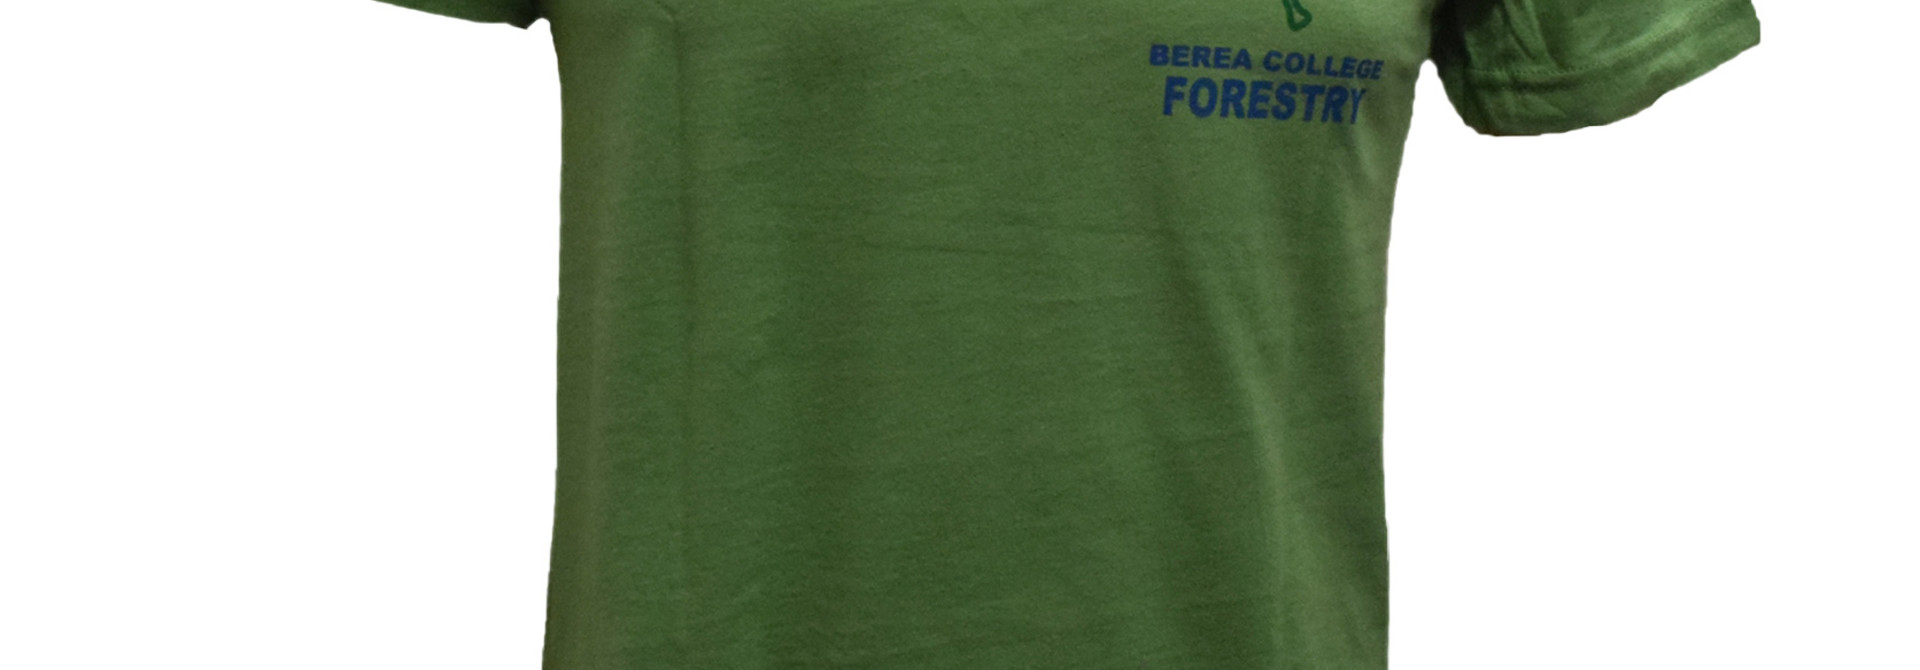 Forestry T-shirt